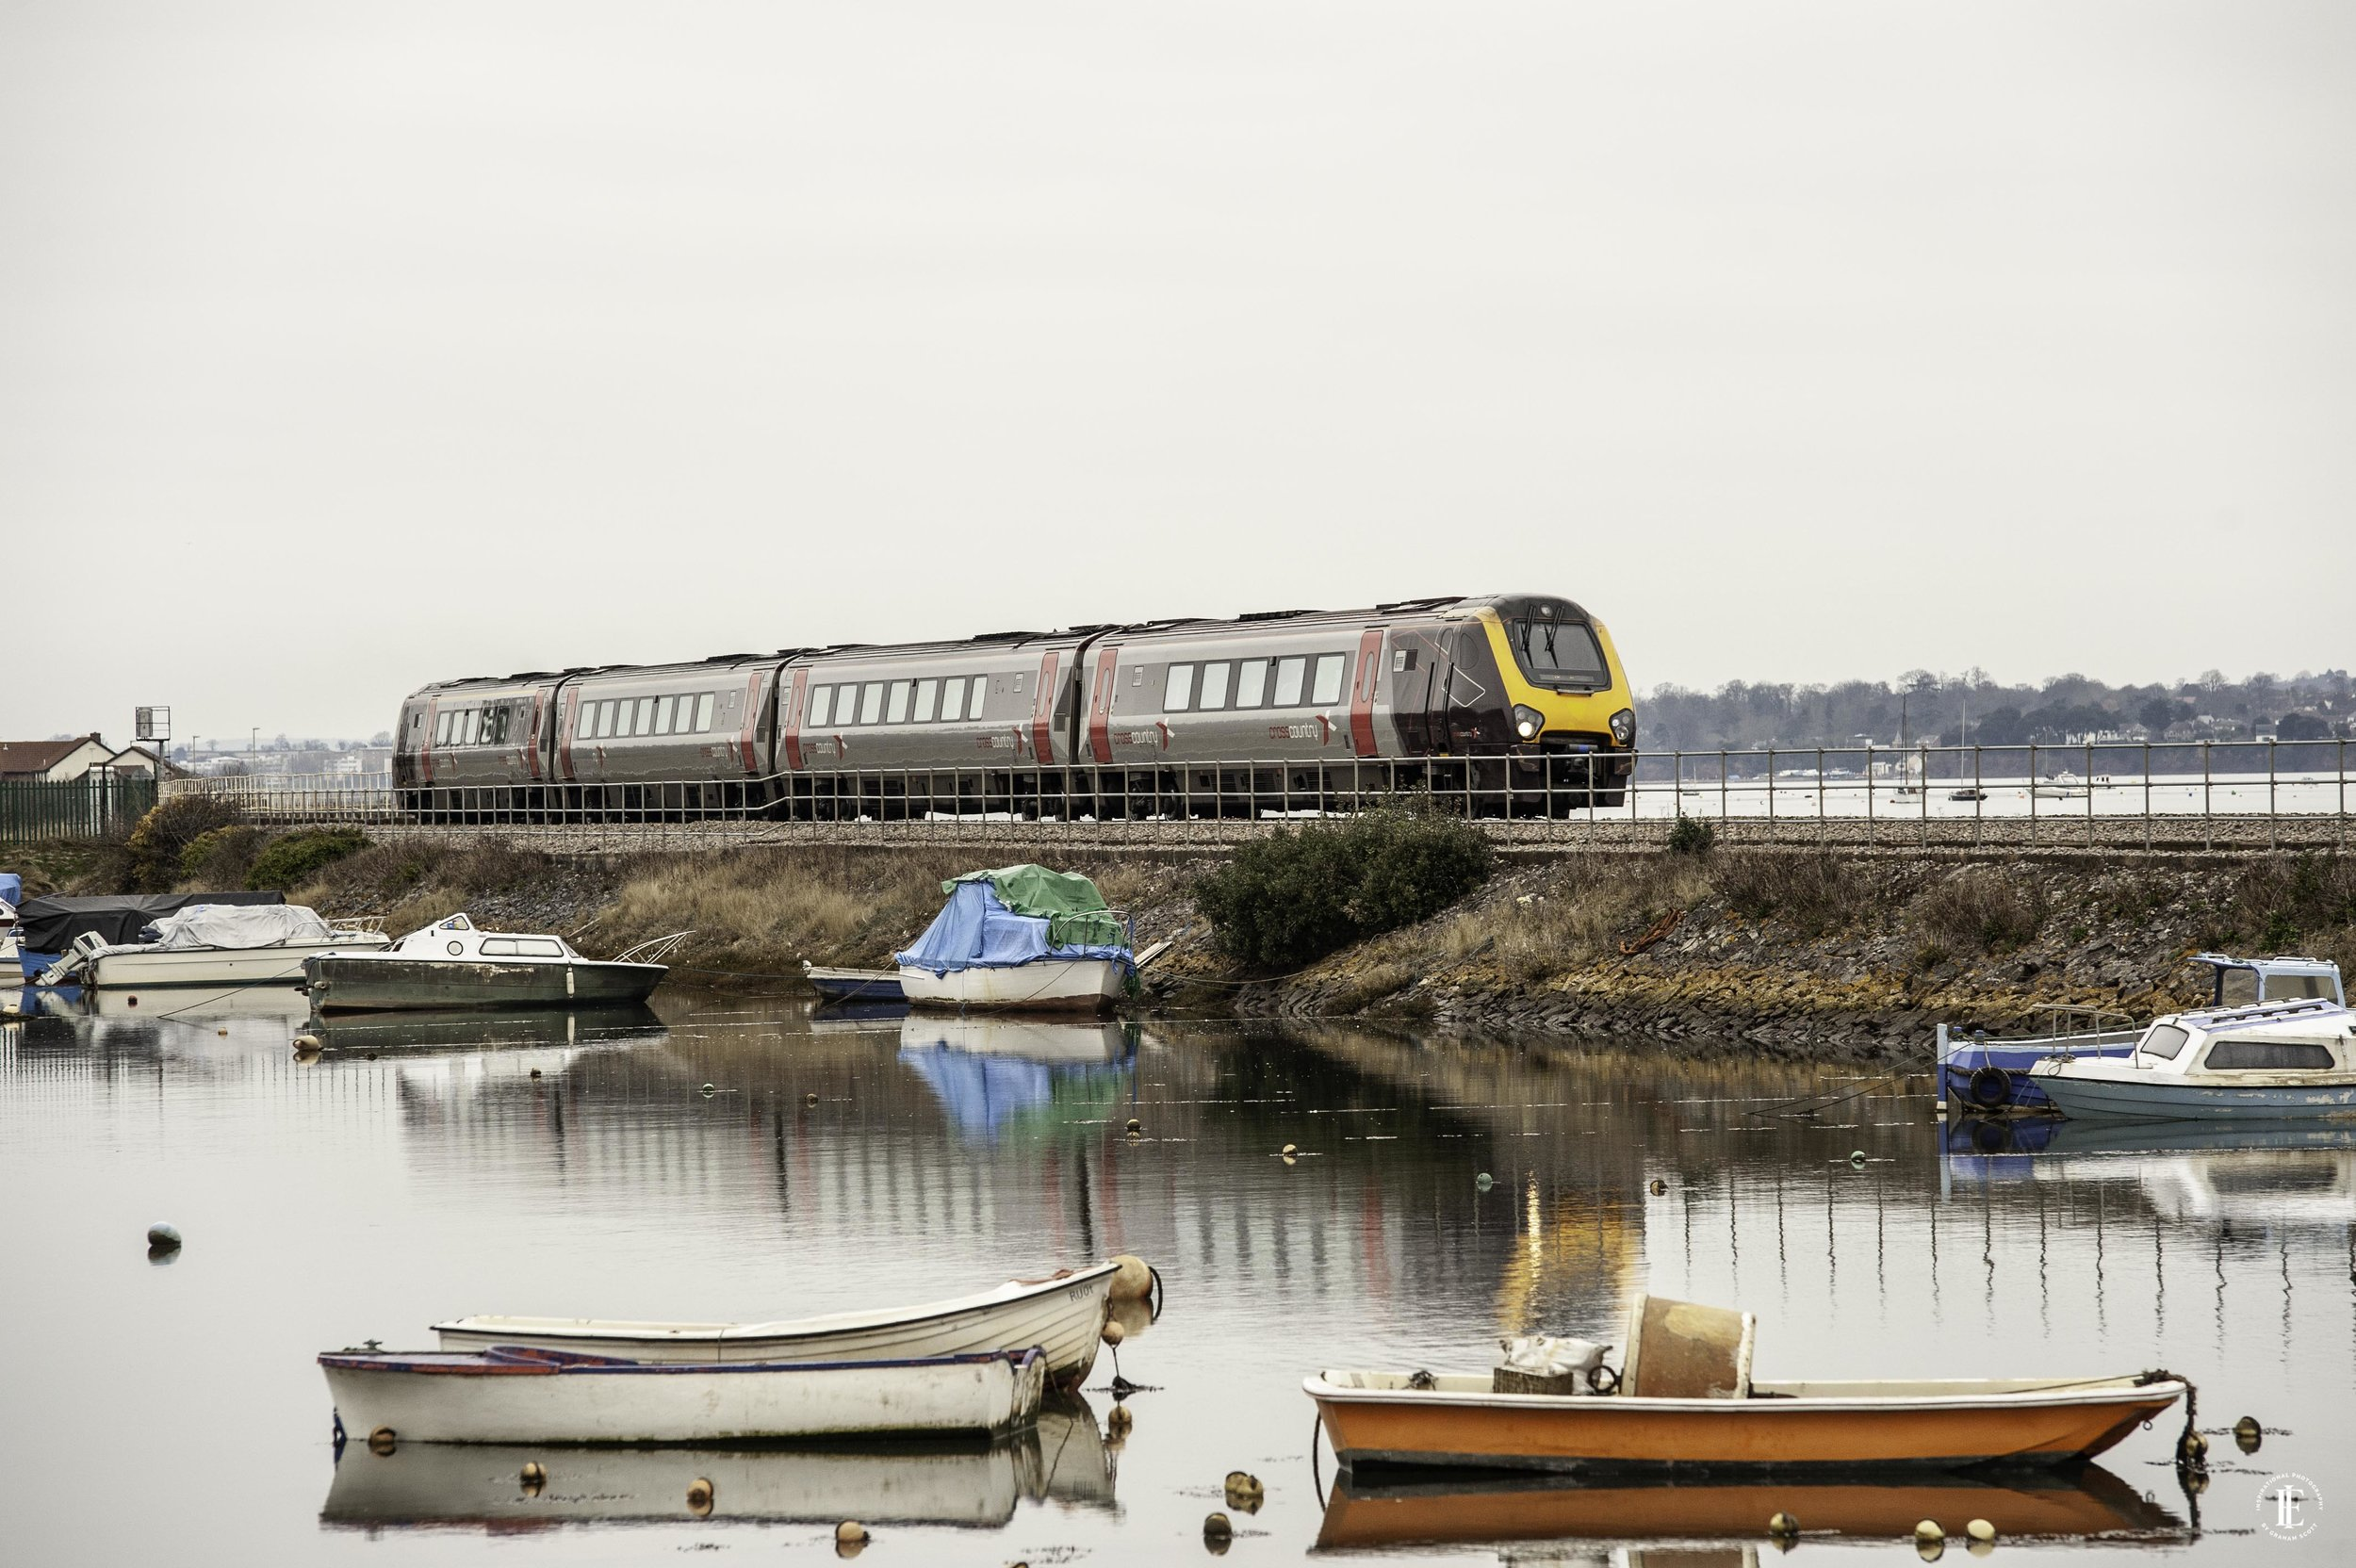 090228 220127  Starcross Harbour.jpg